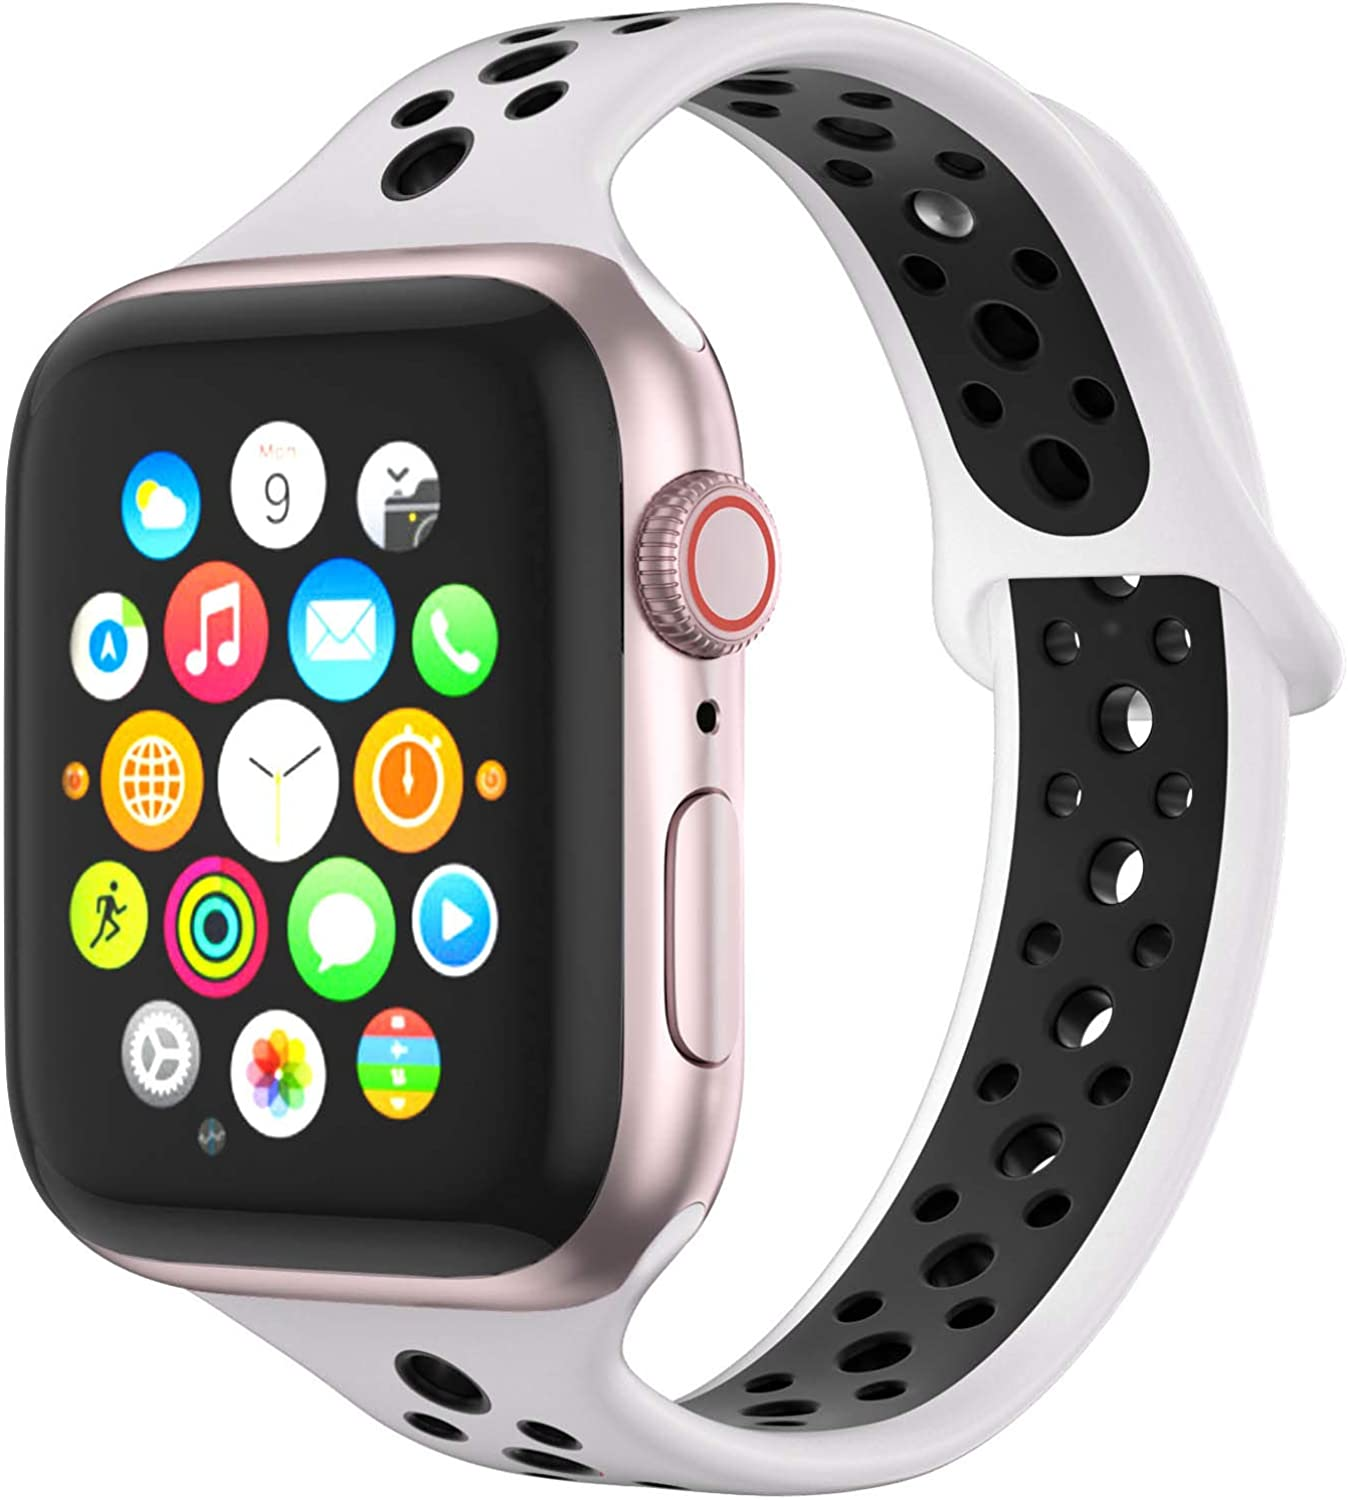 BATINY Silicone Watch Band Compatible with Apple Watch Bands Slim Thin 38mm 40mm 42mm 44mm Replacement Wristbands for iWatch Series 5,4,3,2,1 Straps for Sports